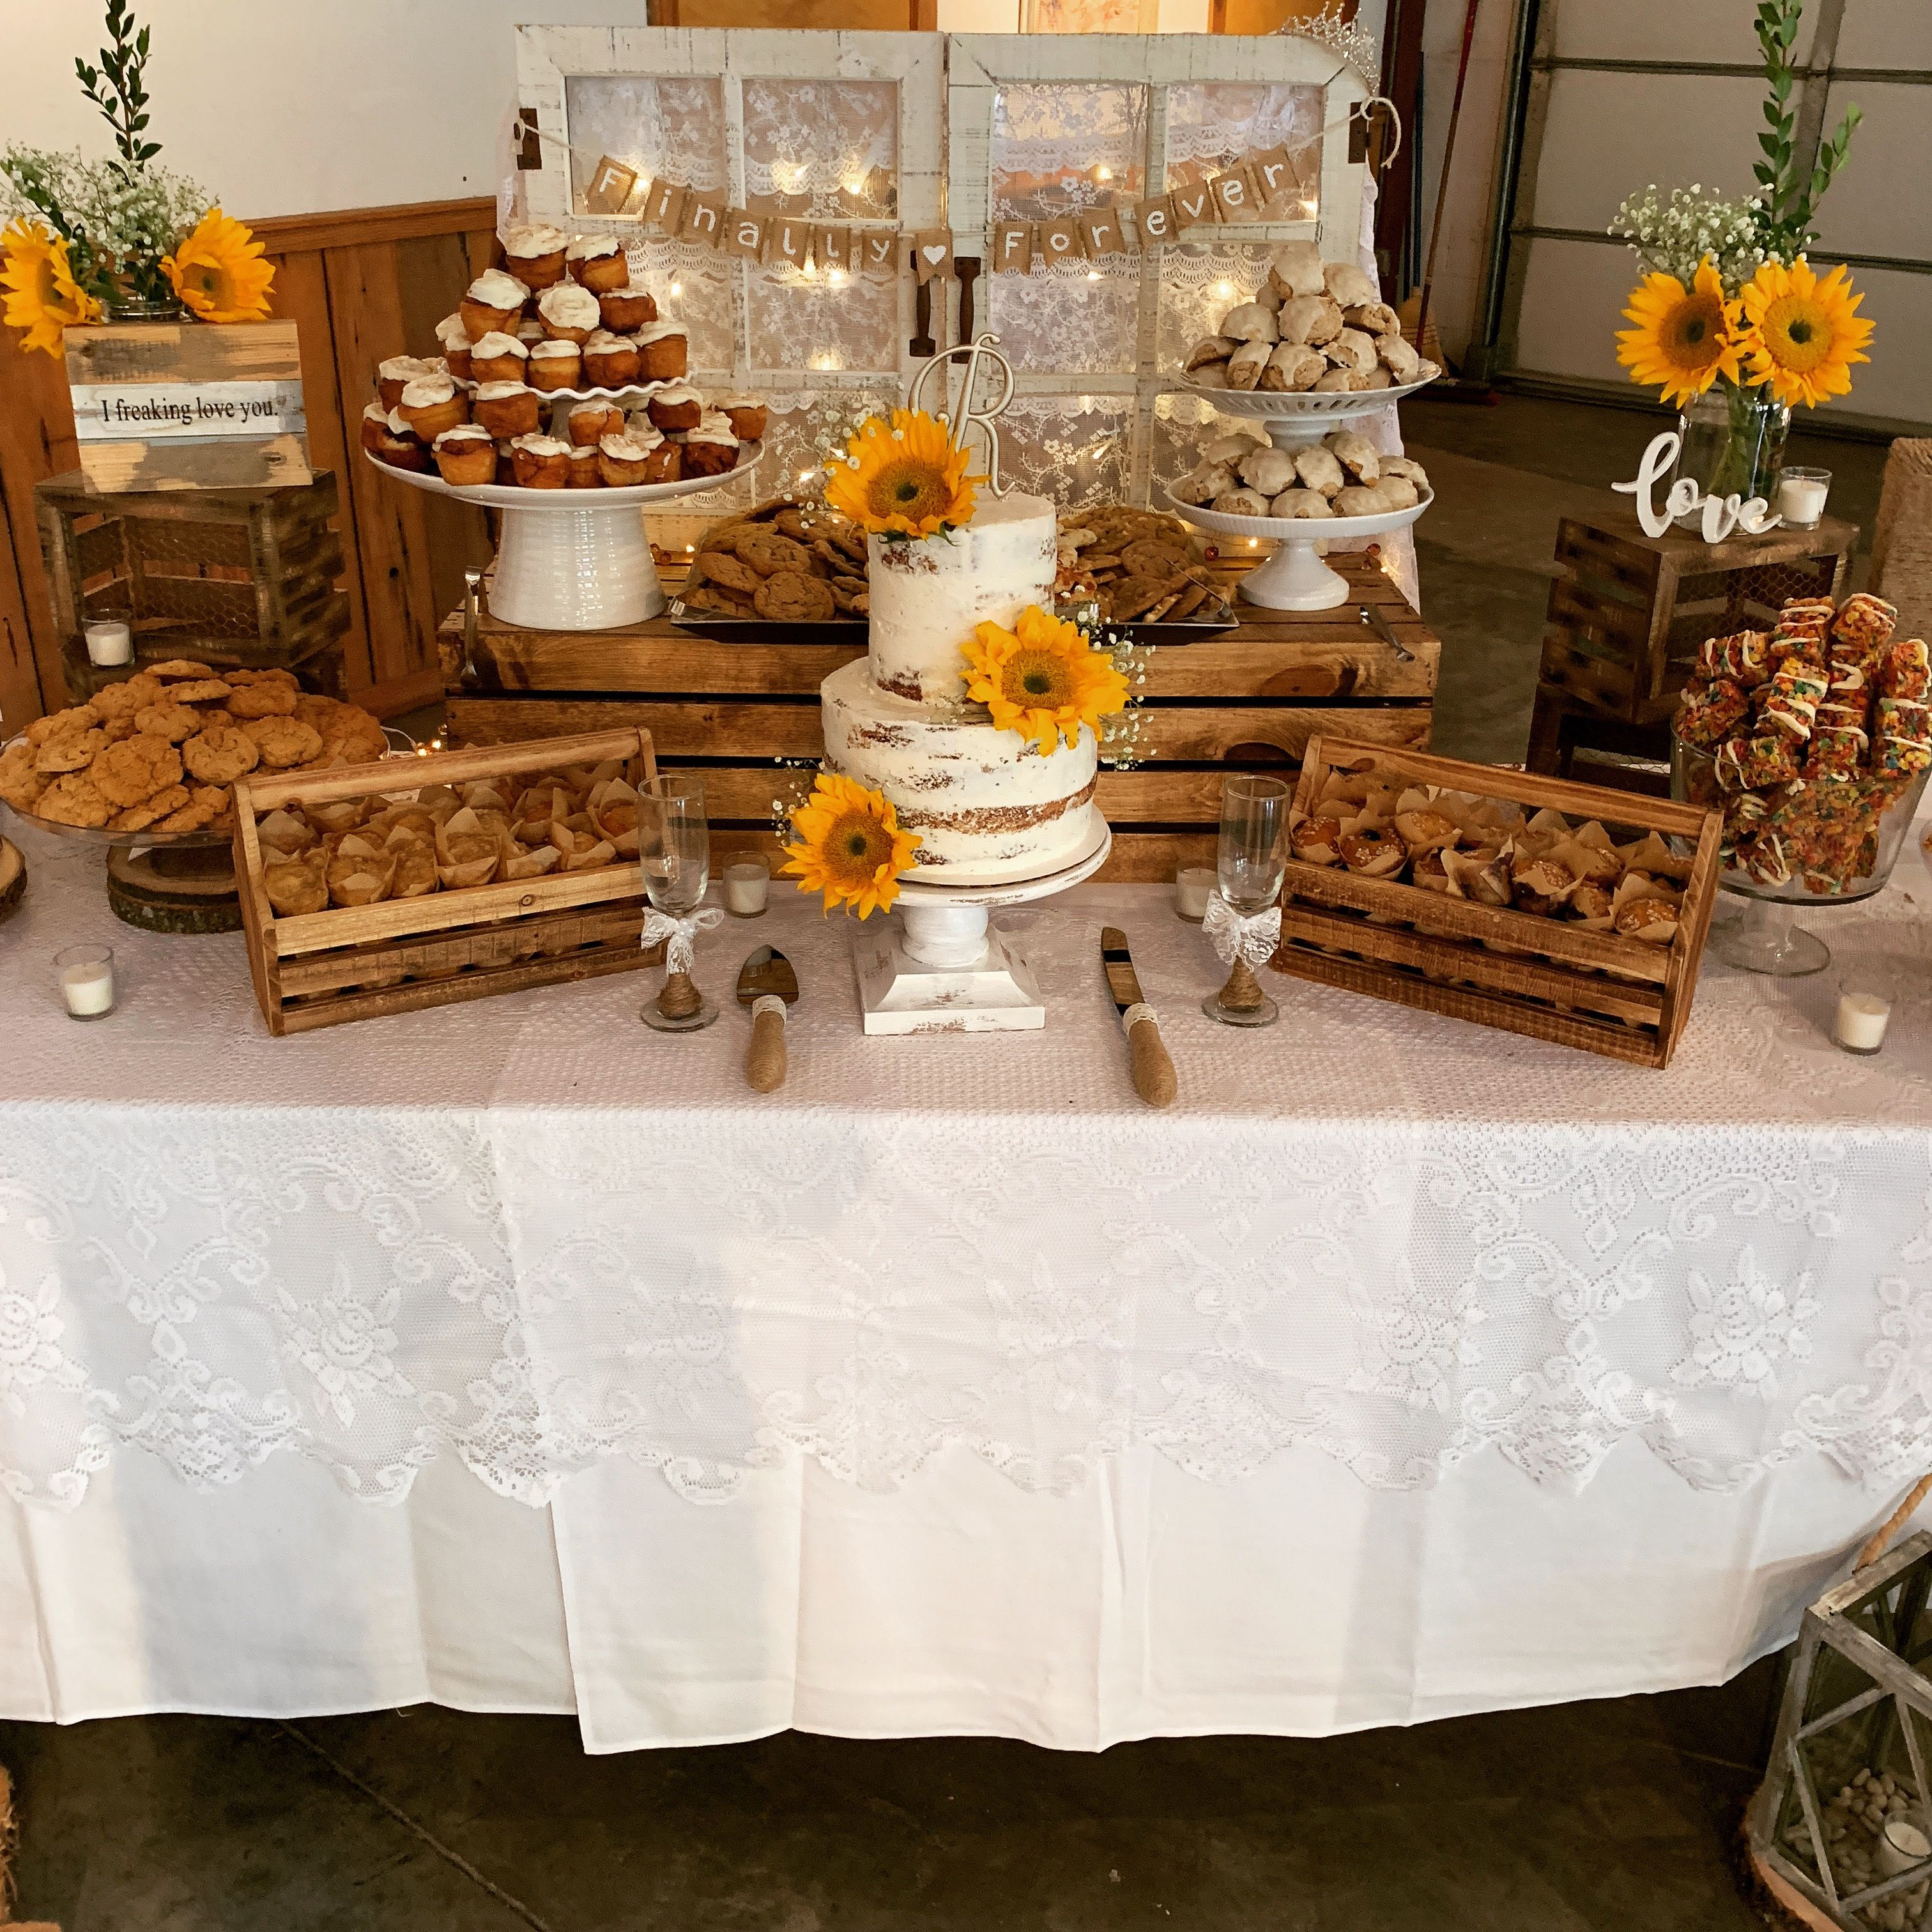 Rustic Wedding Dessert Table Decor With Sunflowers With Images